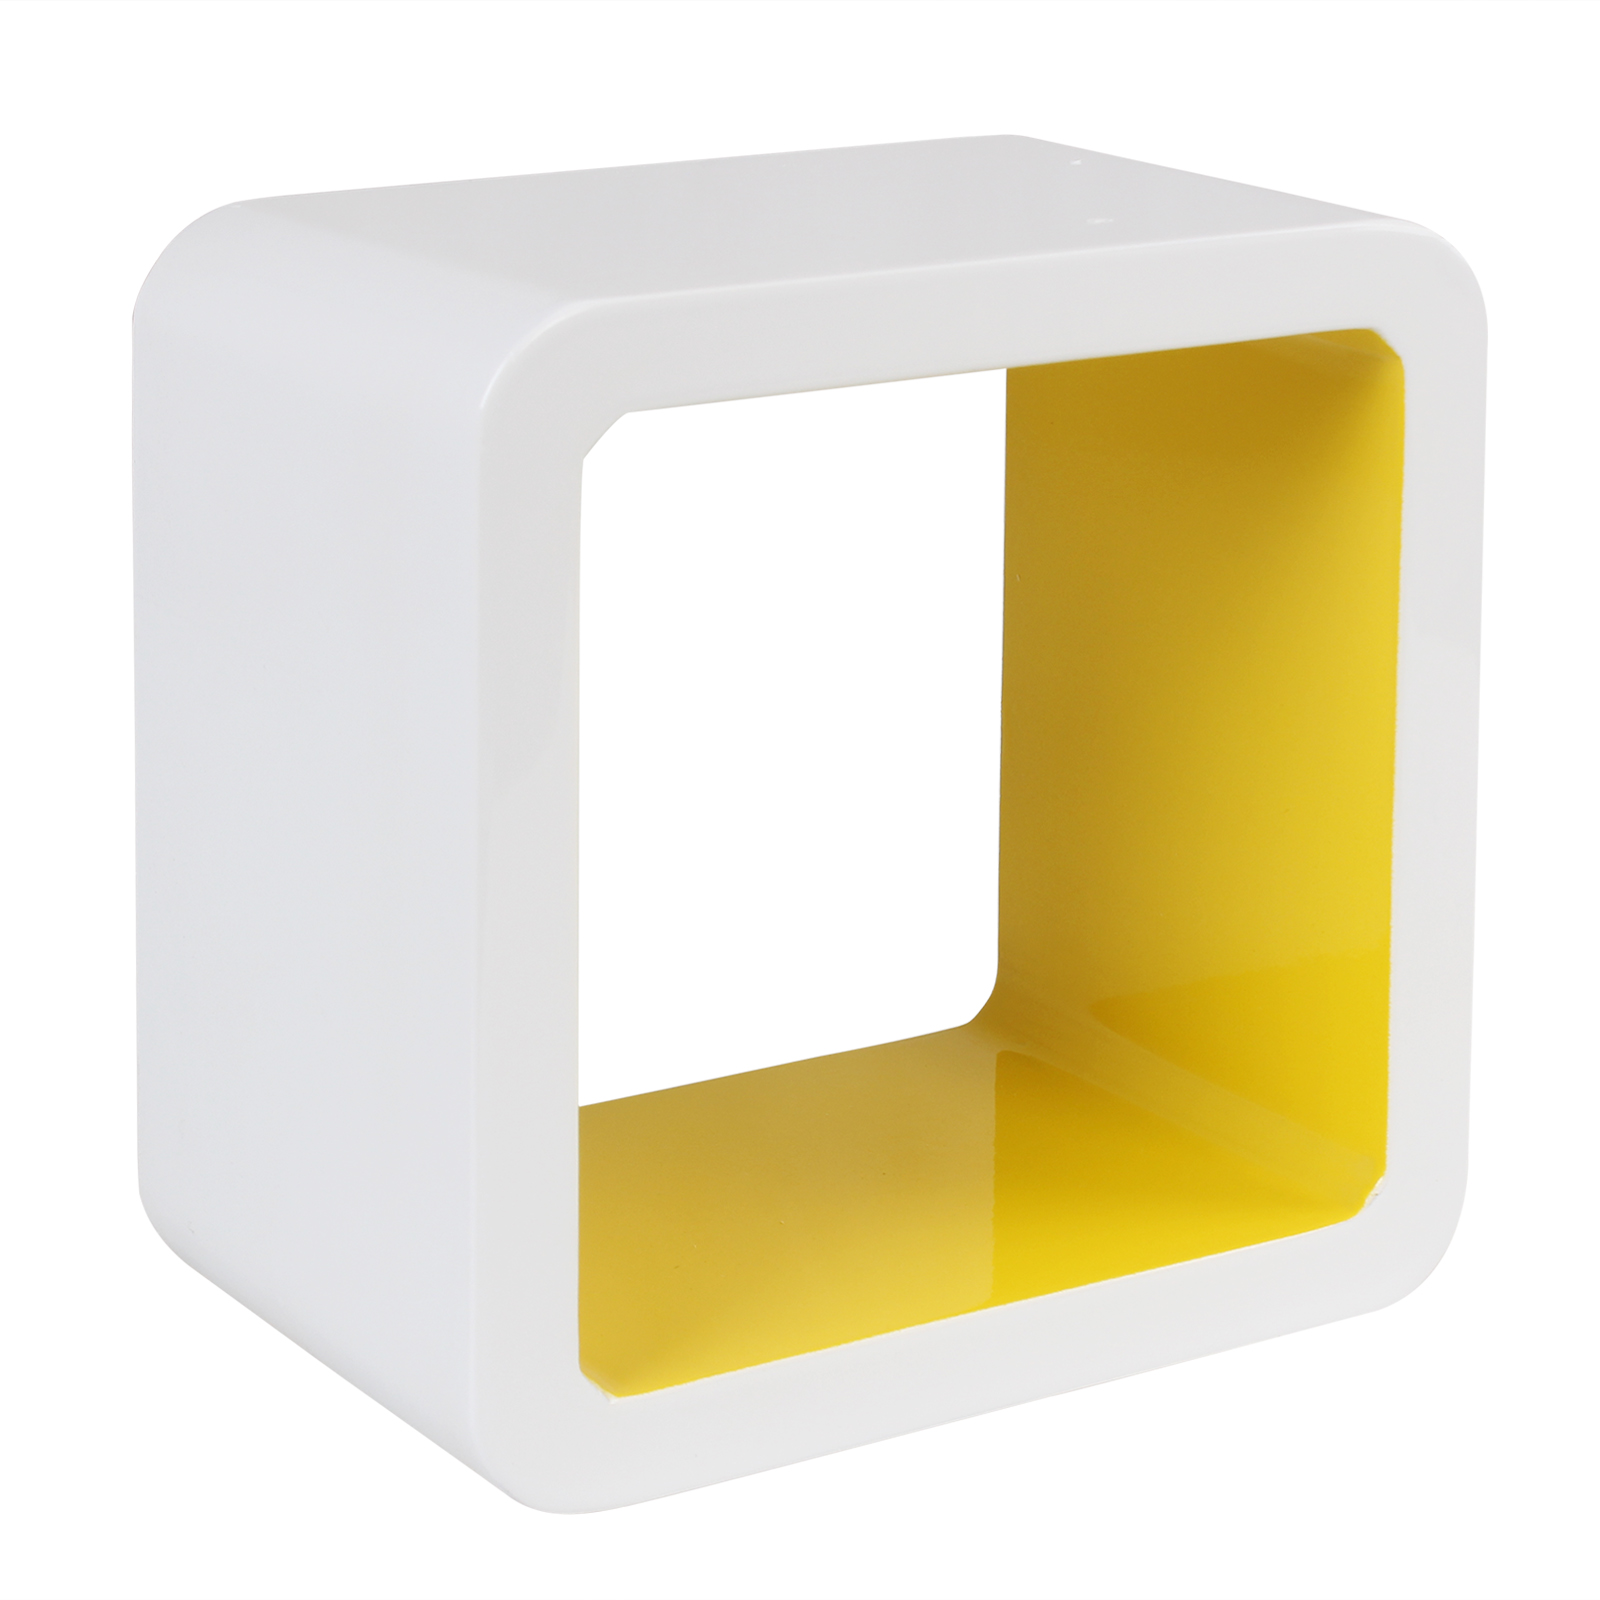 Contemporary Decorative Cube Wall Shelves Ensign - Wall Art ...